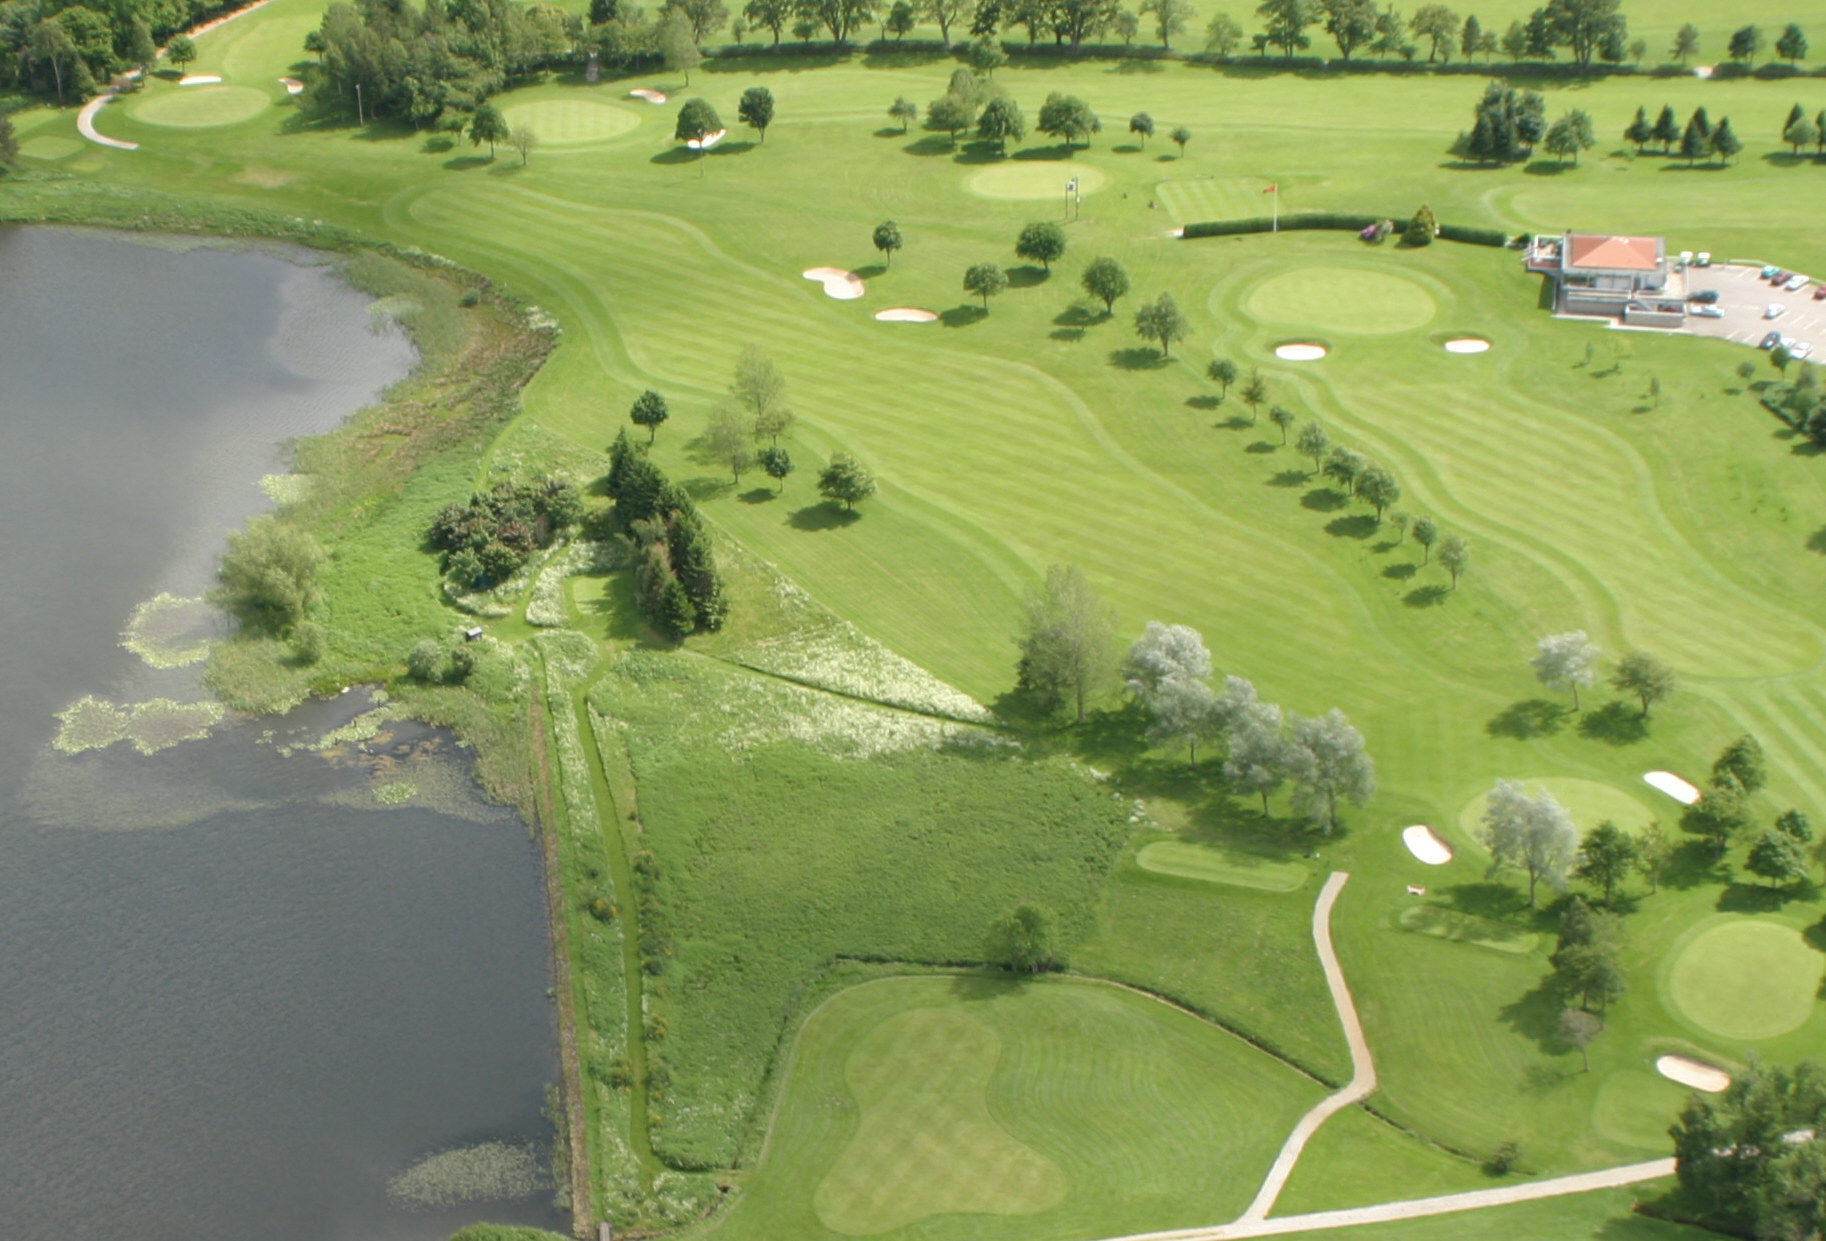 Aboyne golf club cover picture